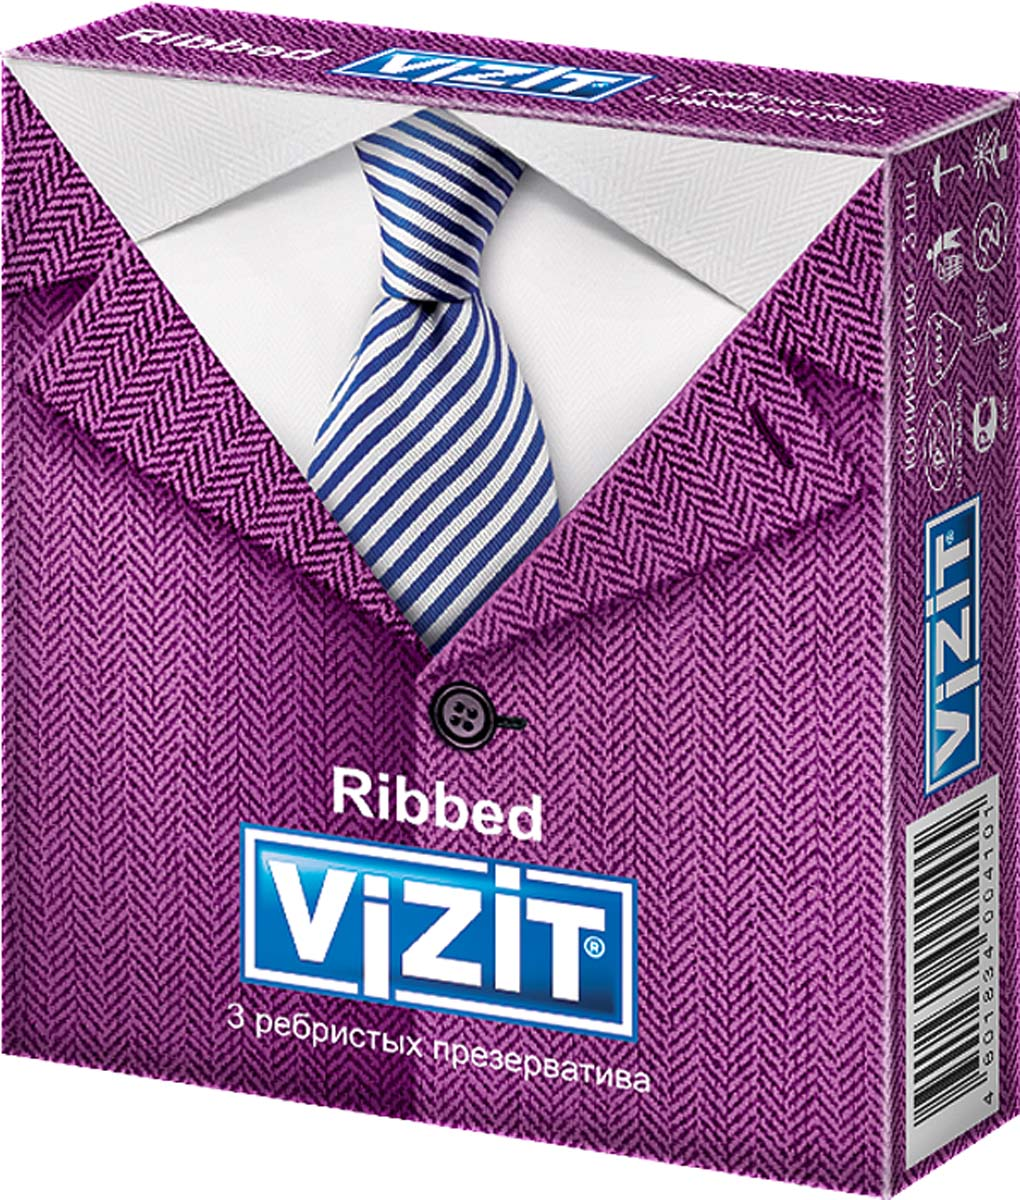 VIZIT Презервативы Ribbed, ребристые, 3 шт ouch deluxe silicone strap on 10 красный страпон с креплениями